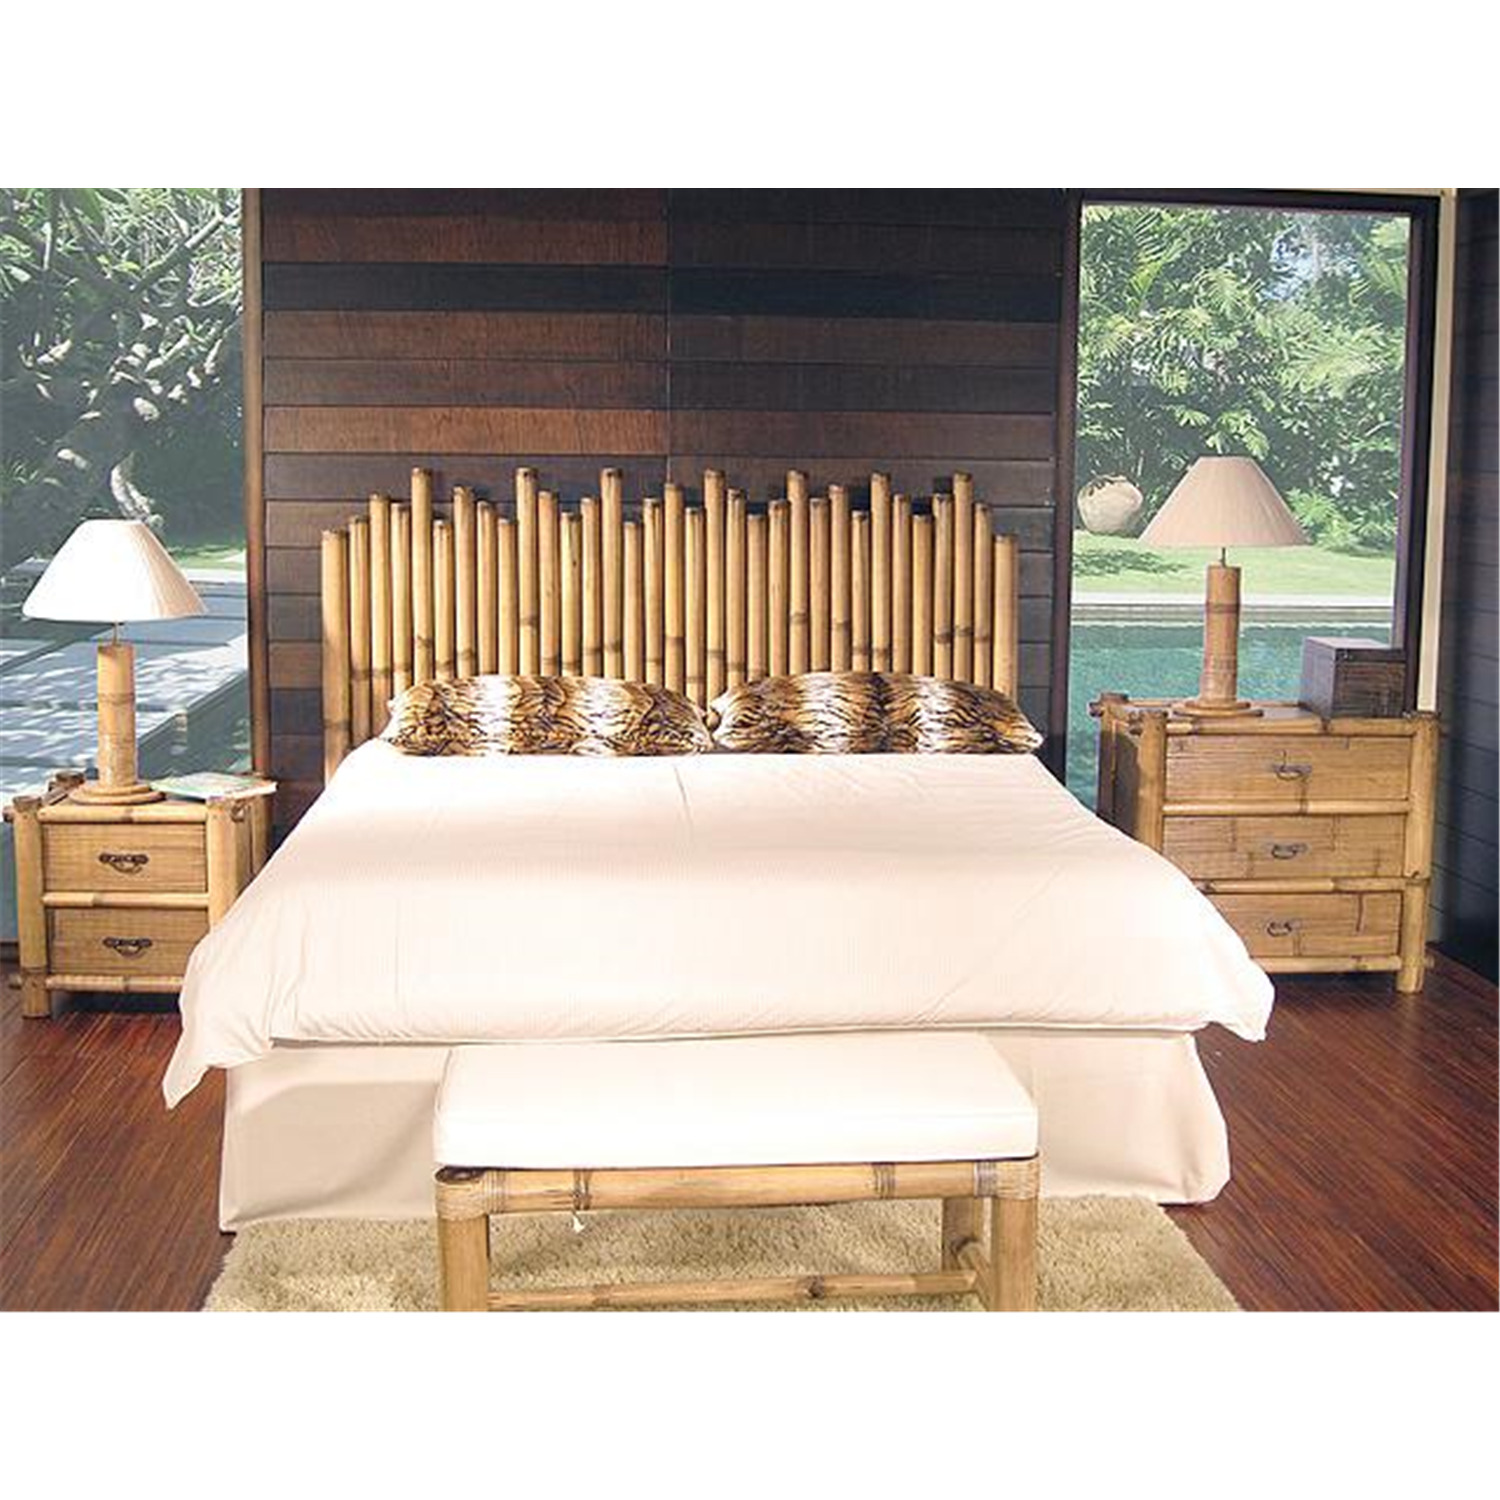 Bamboo Bedroom Decor Style Remodelling Home Design Ideas Impressive Bamboo Bedroom Decor Style Remodelling